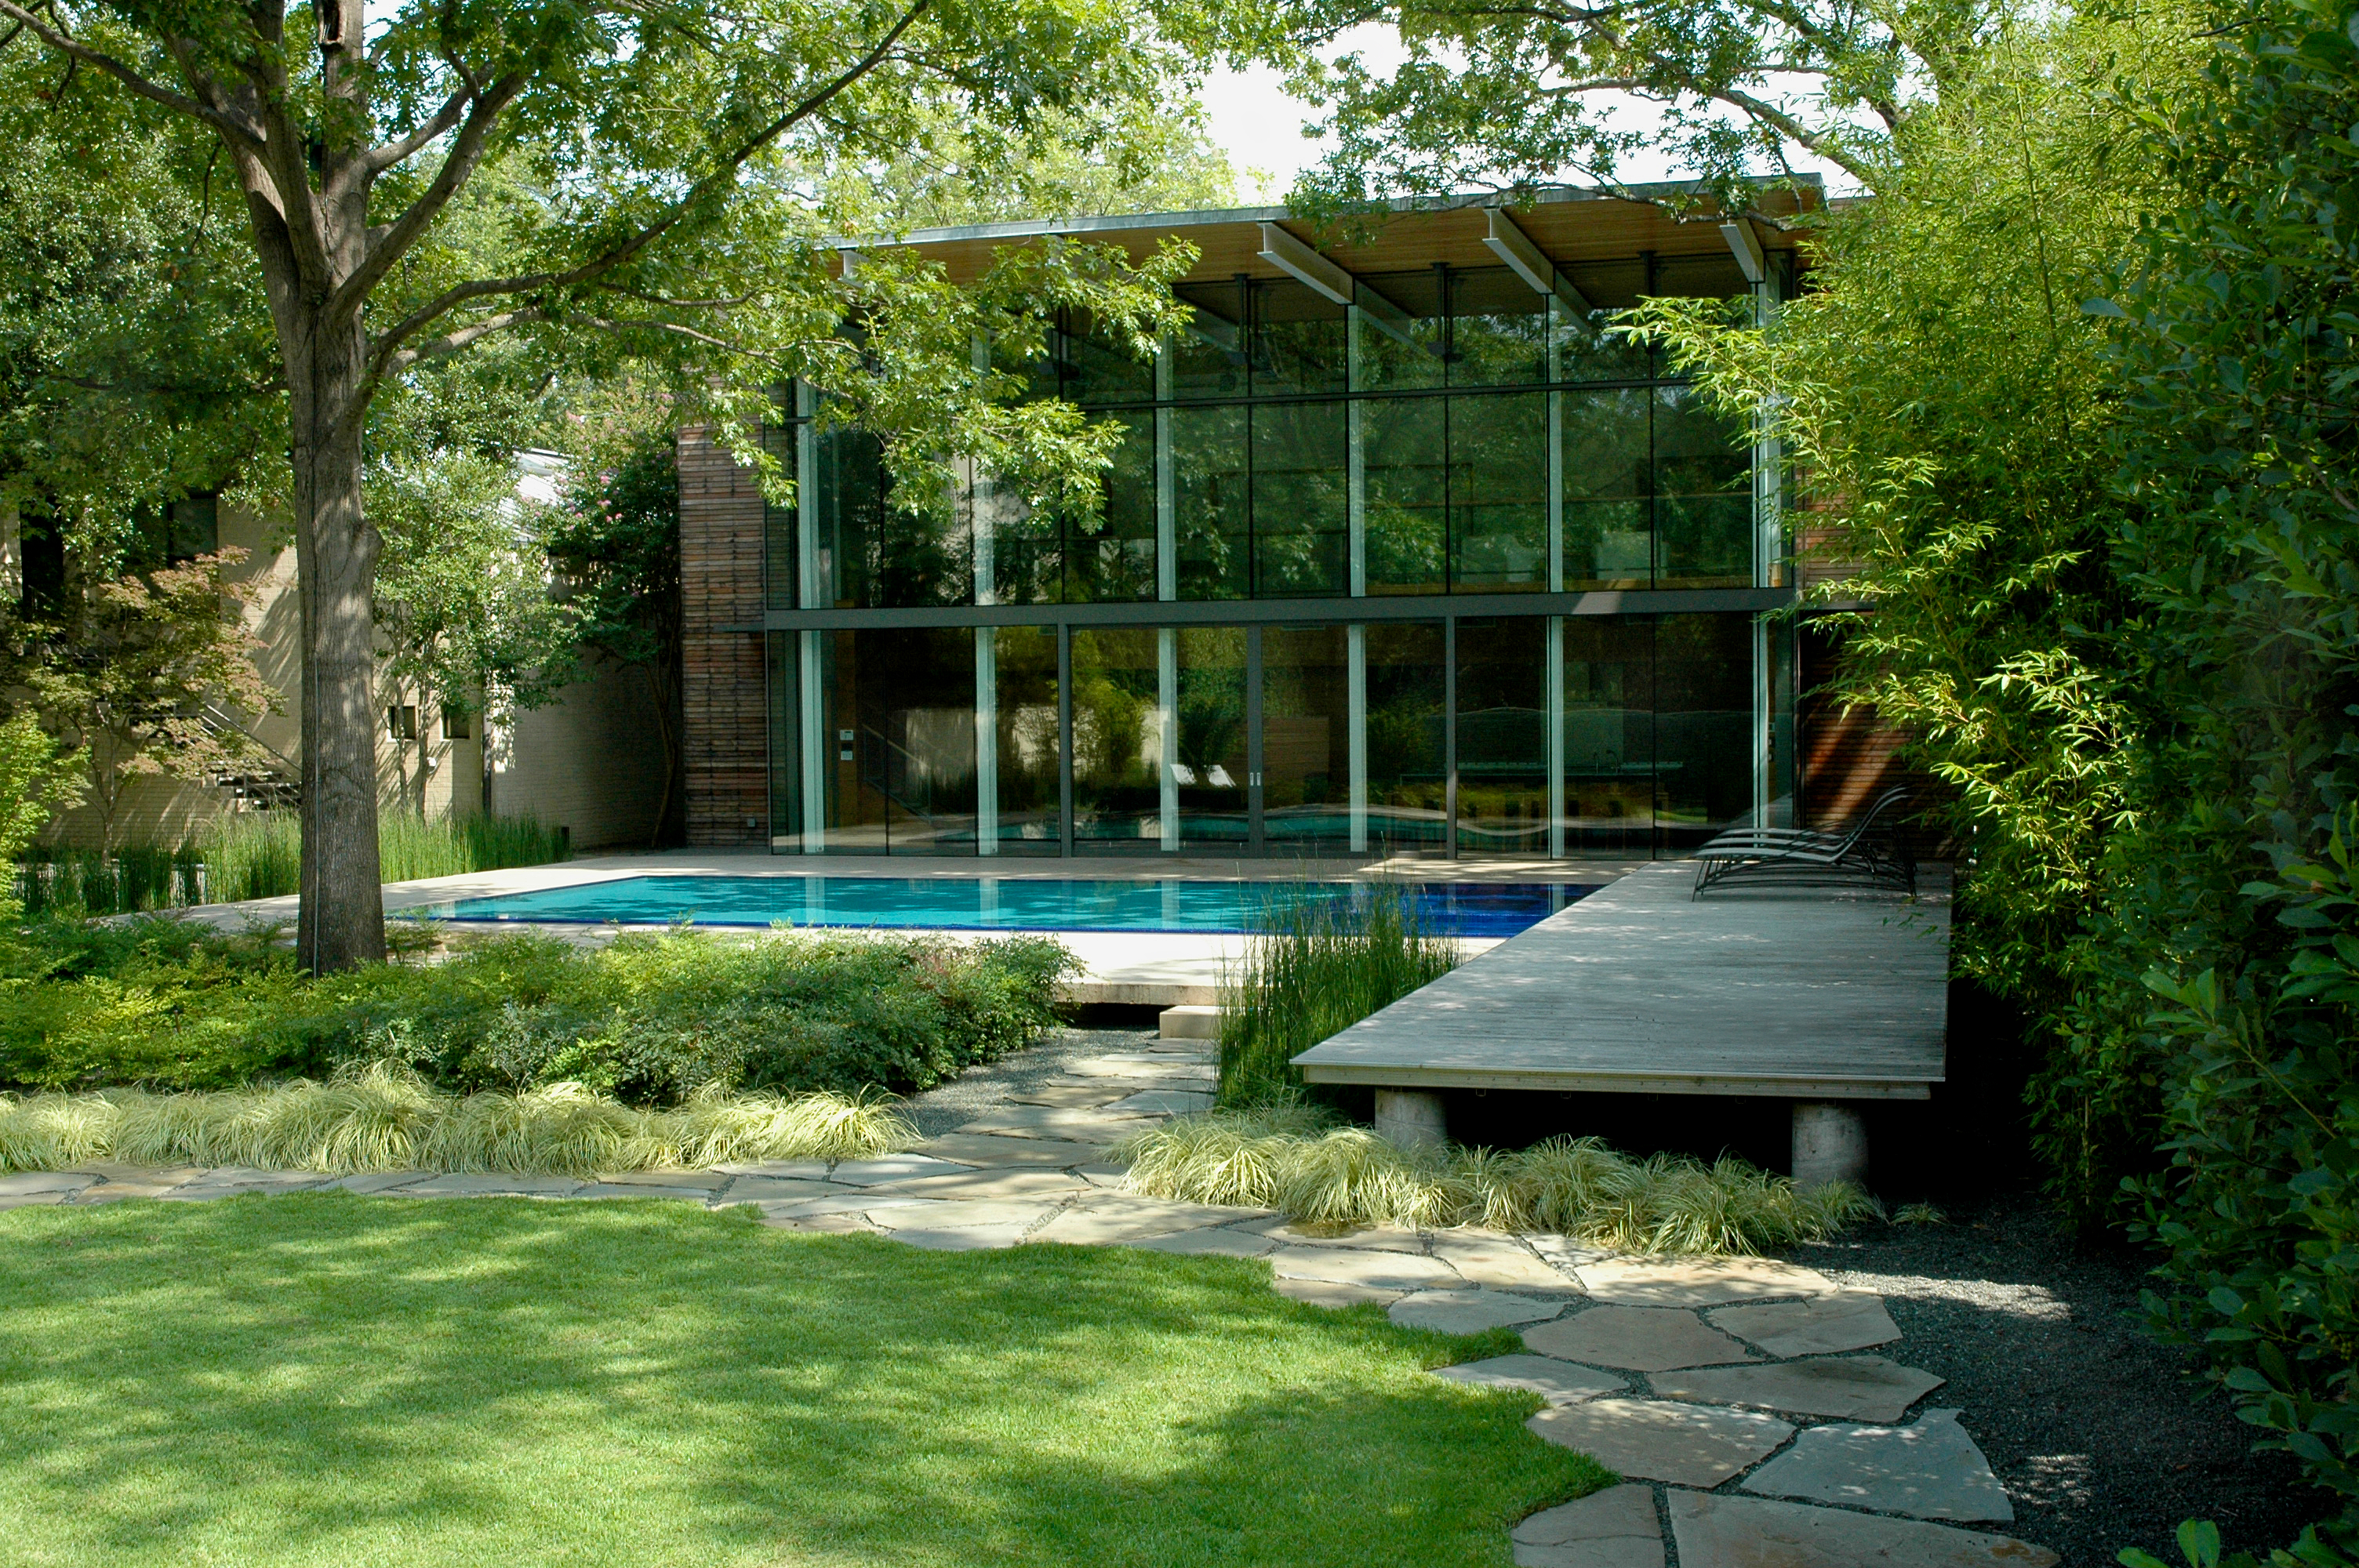 Asla 2010 professional awards the pool house for Landscape design usa